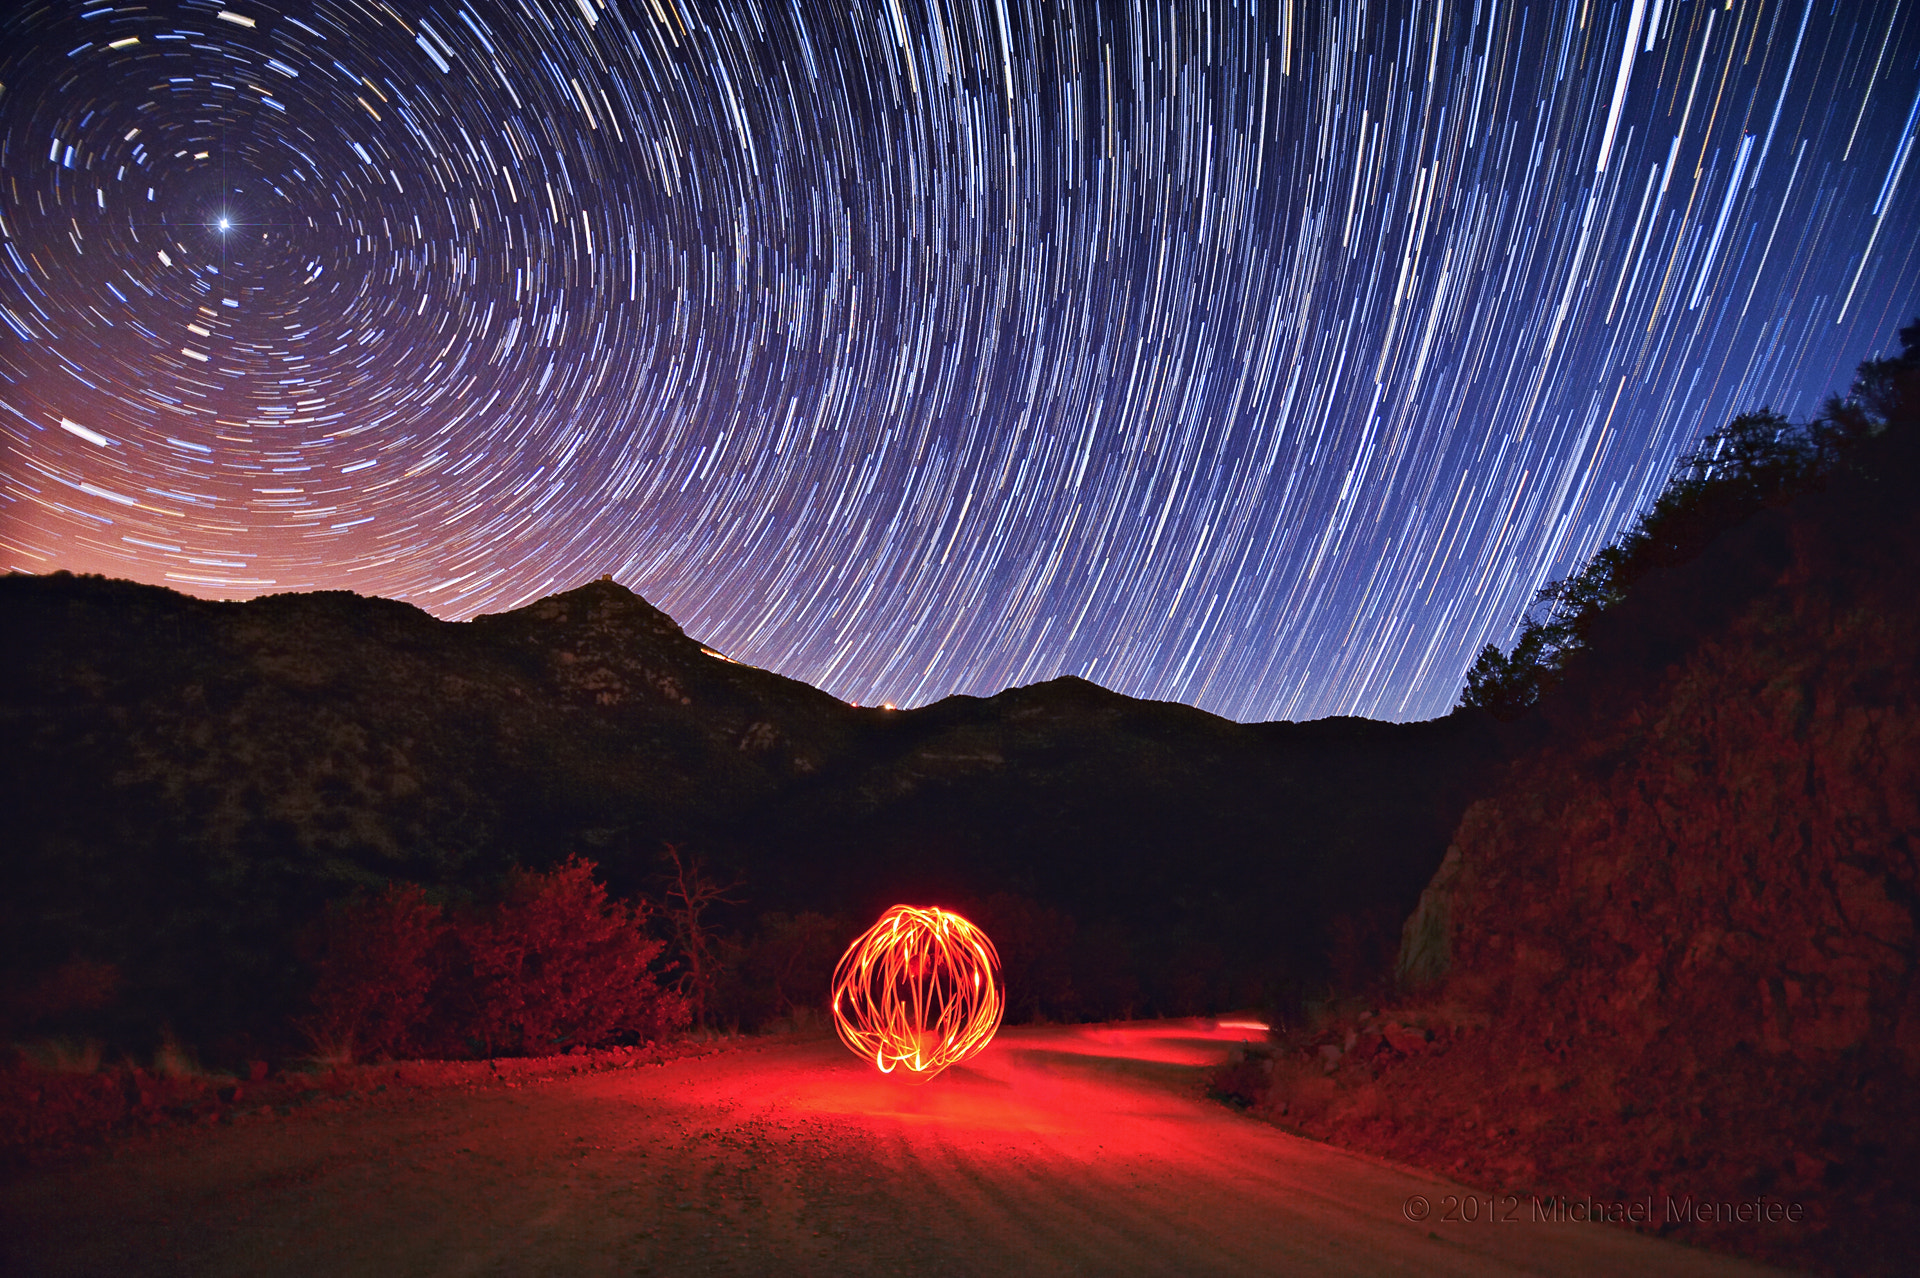 Photograph Whirled Whipple Observatory by Michael Menefee on 500px